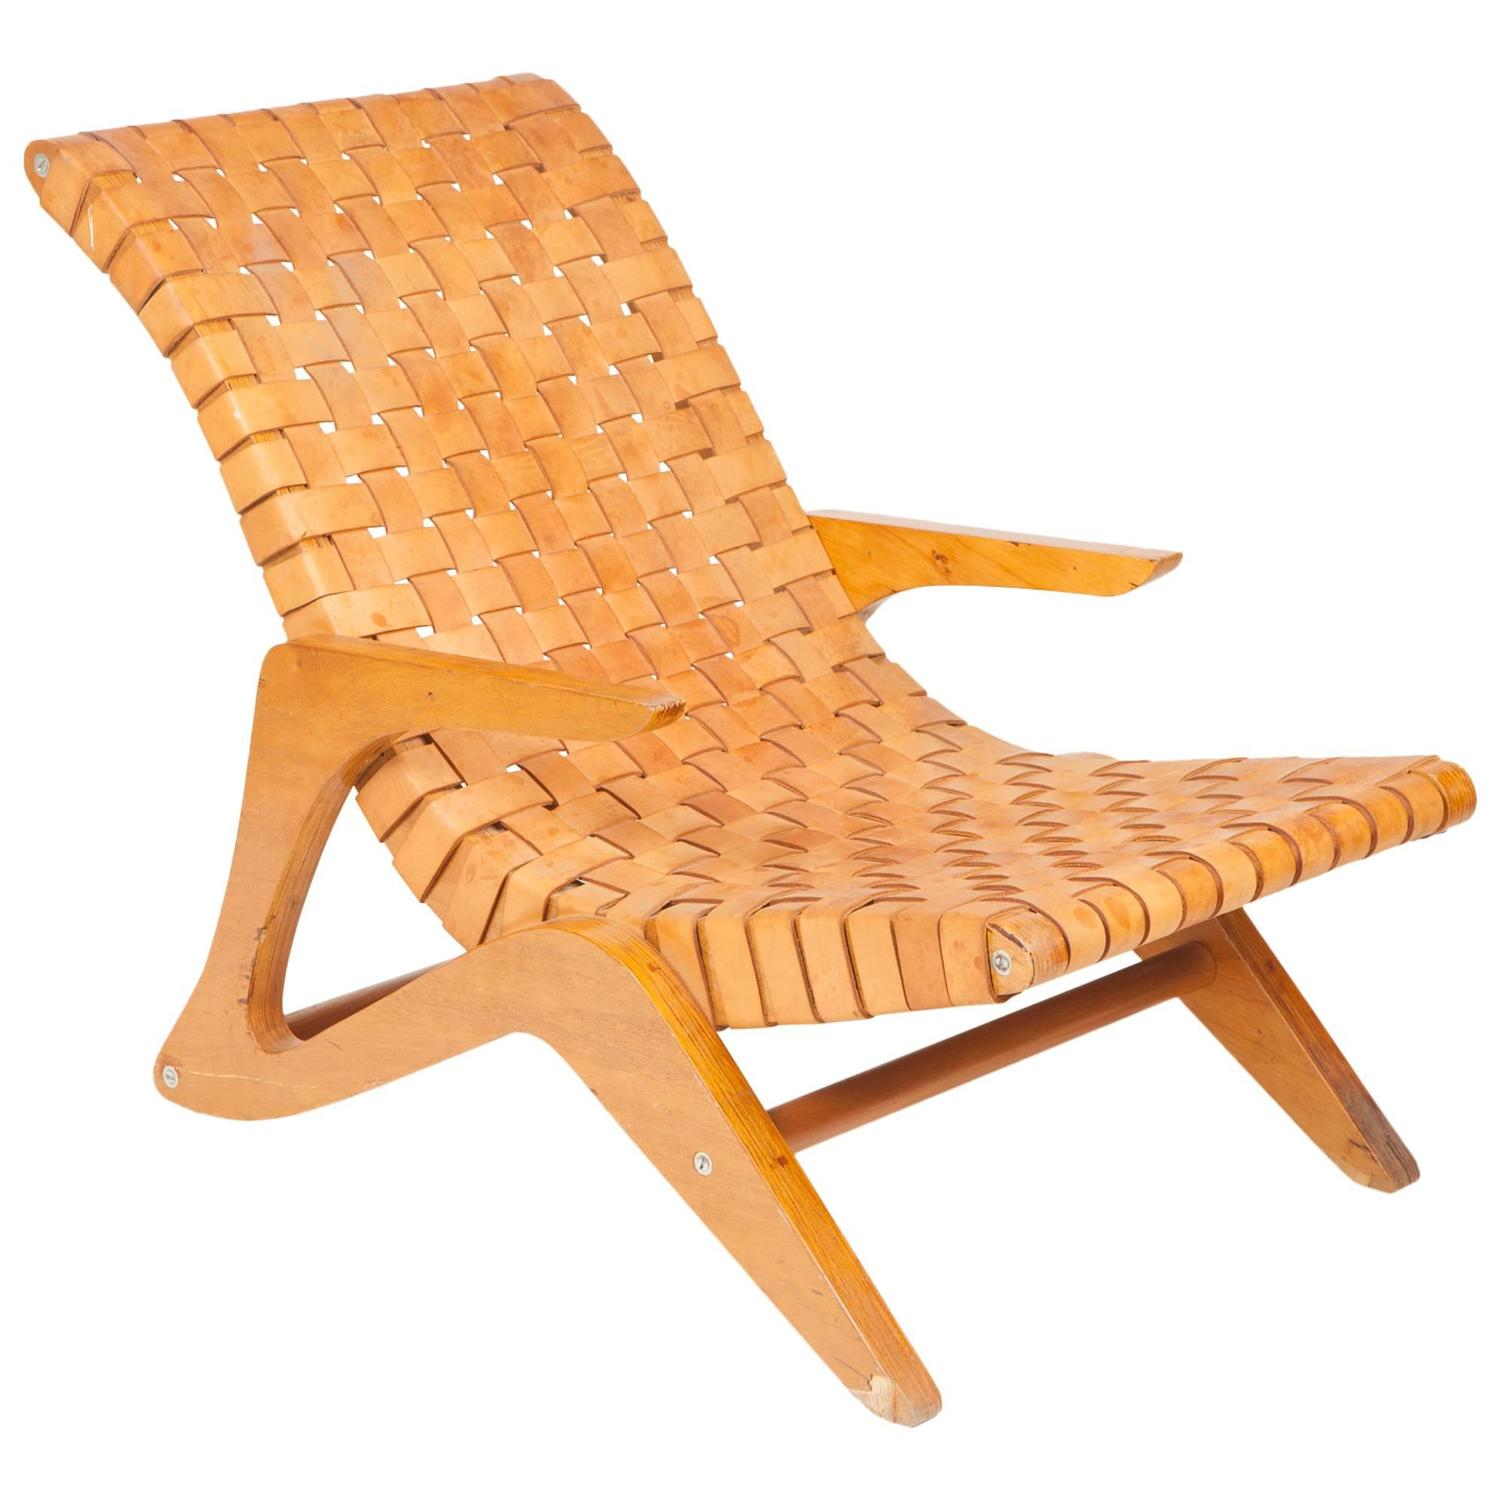 Chaise longue linha z for sale at 1stdibs for Chaise longue tours